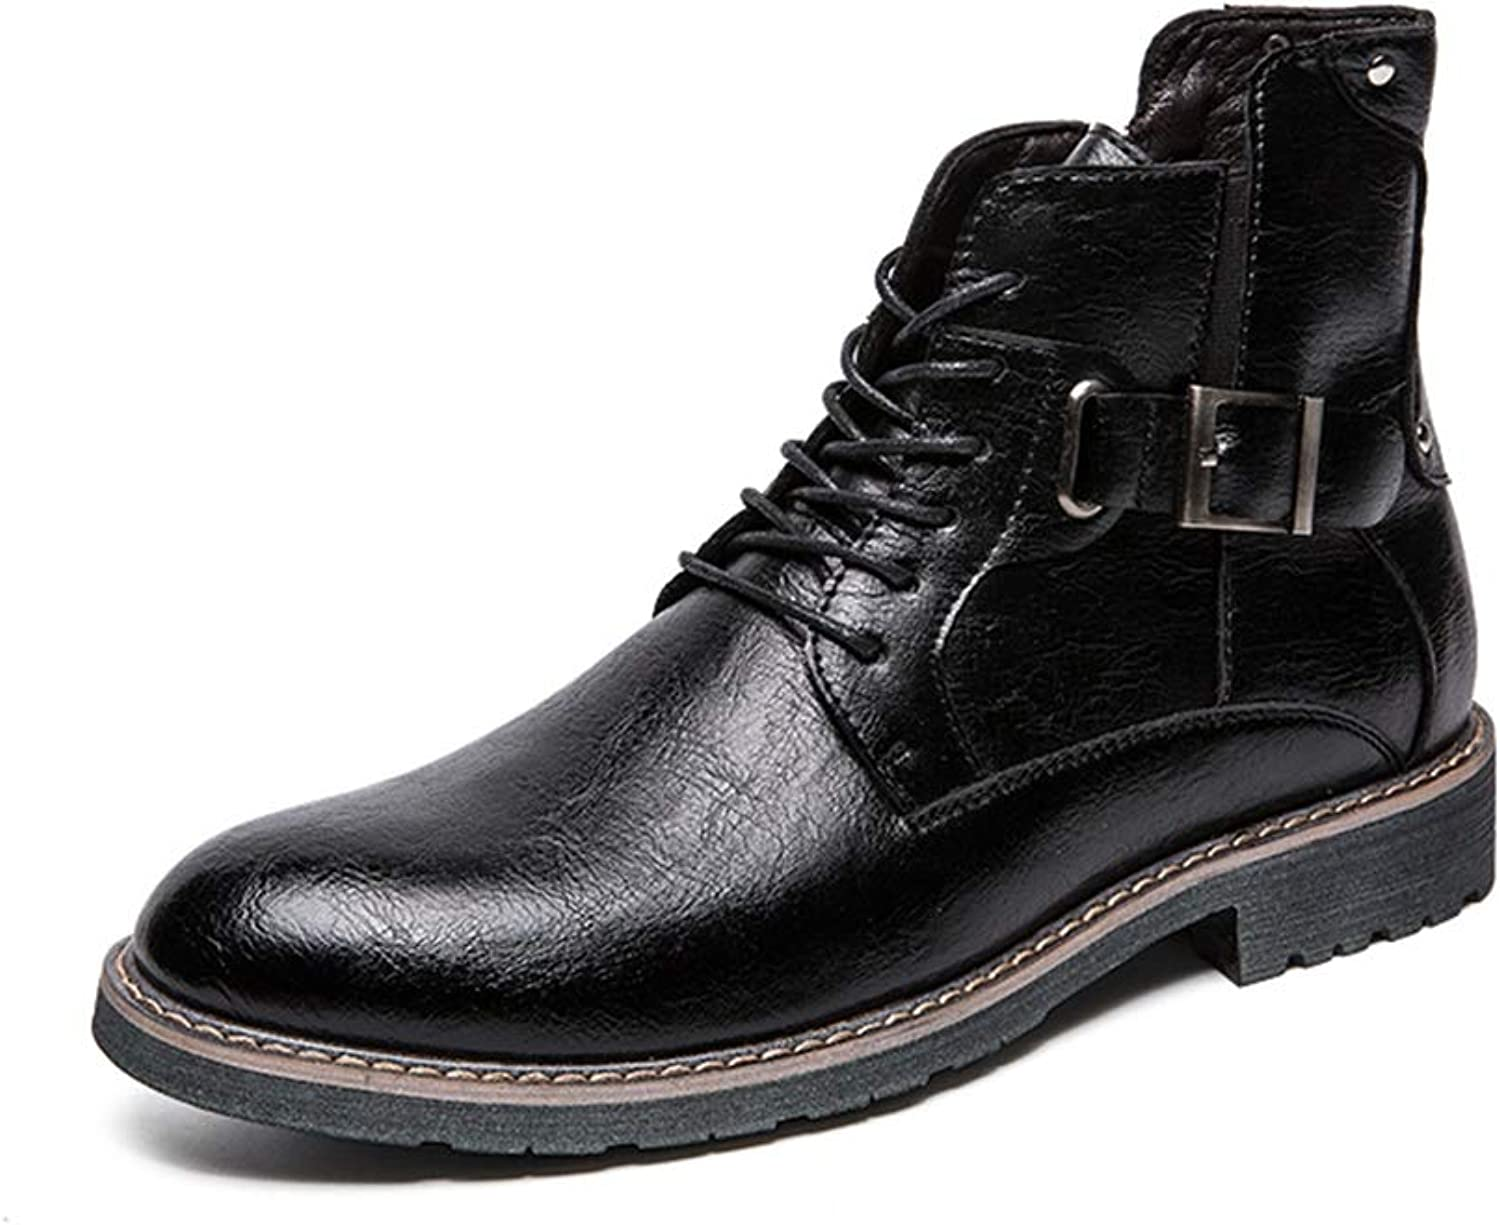 SRY-shoes 2018 New Men's Fashion Work Ankle Boots Casual Rust-Proof Metal Button Convenient Zipper High Top Martin Boot